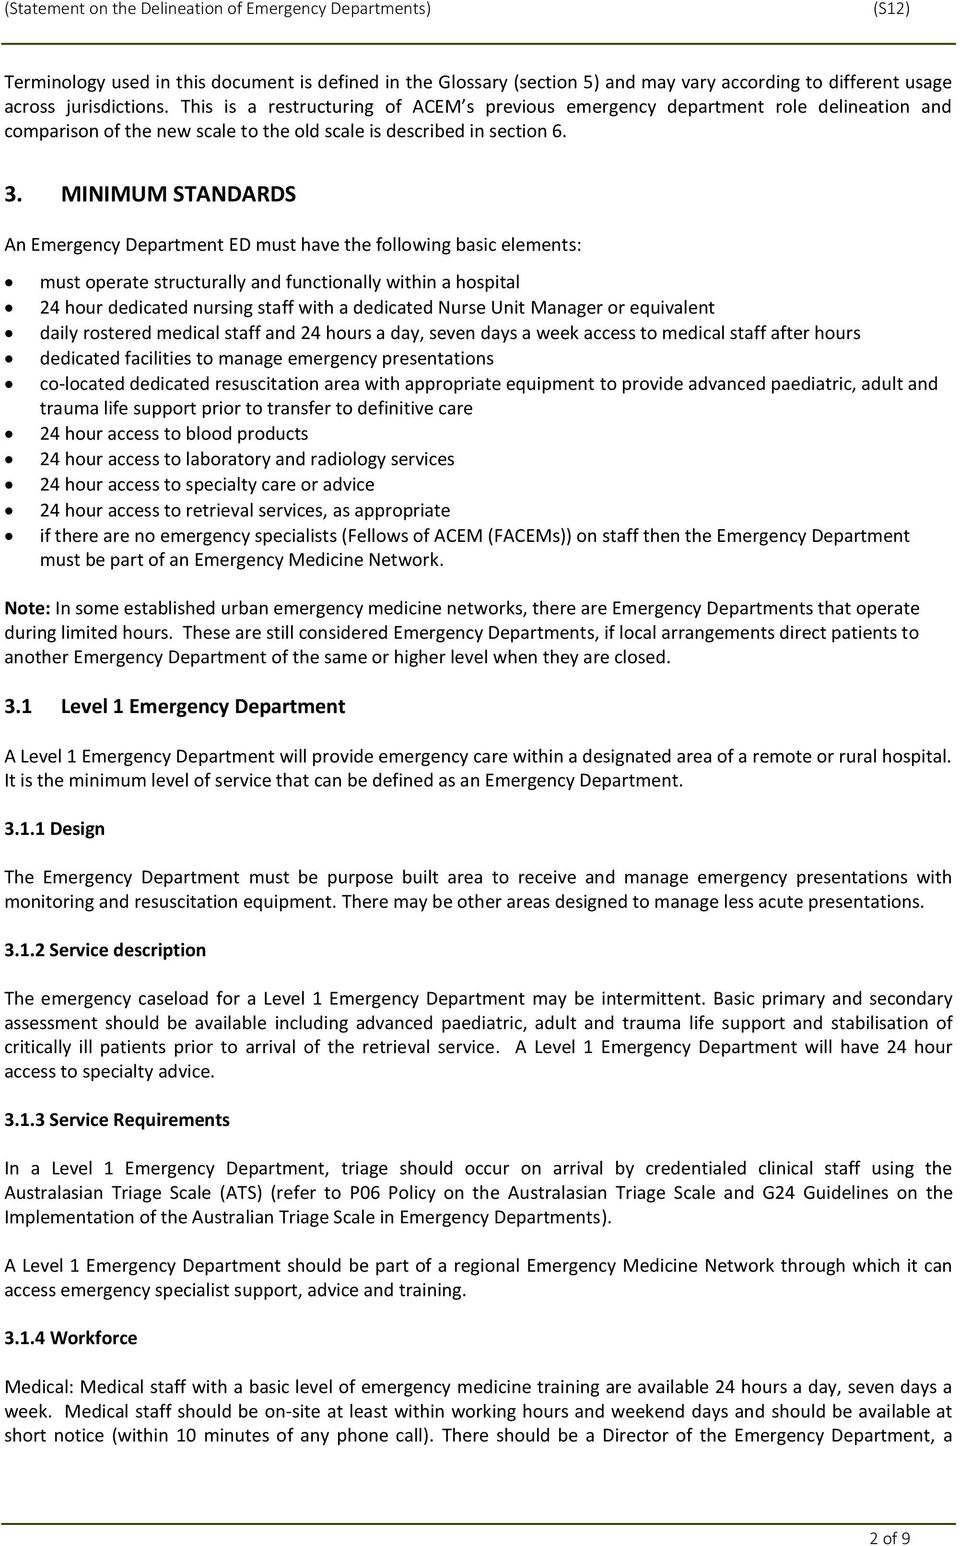 MINIMUM STANDARDS An Emergency Department ED must have the following basic elements: must operate structurally and functionally within a hospital 24 hour dedicated nursing staff with a dedicated